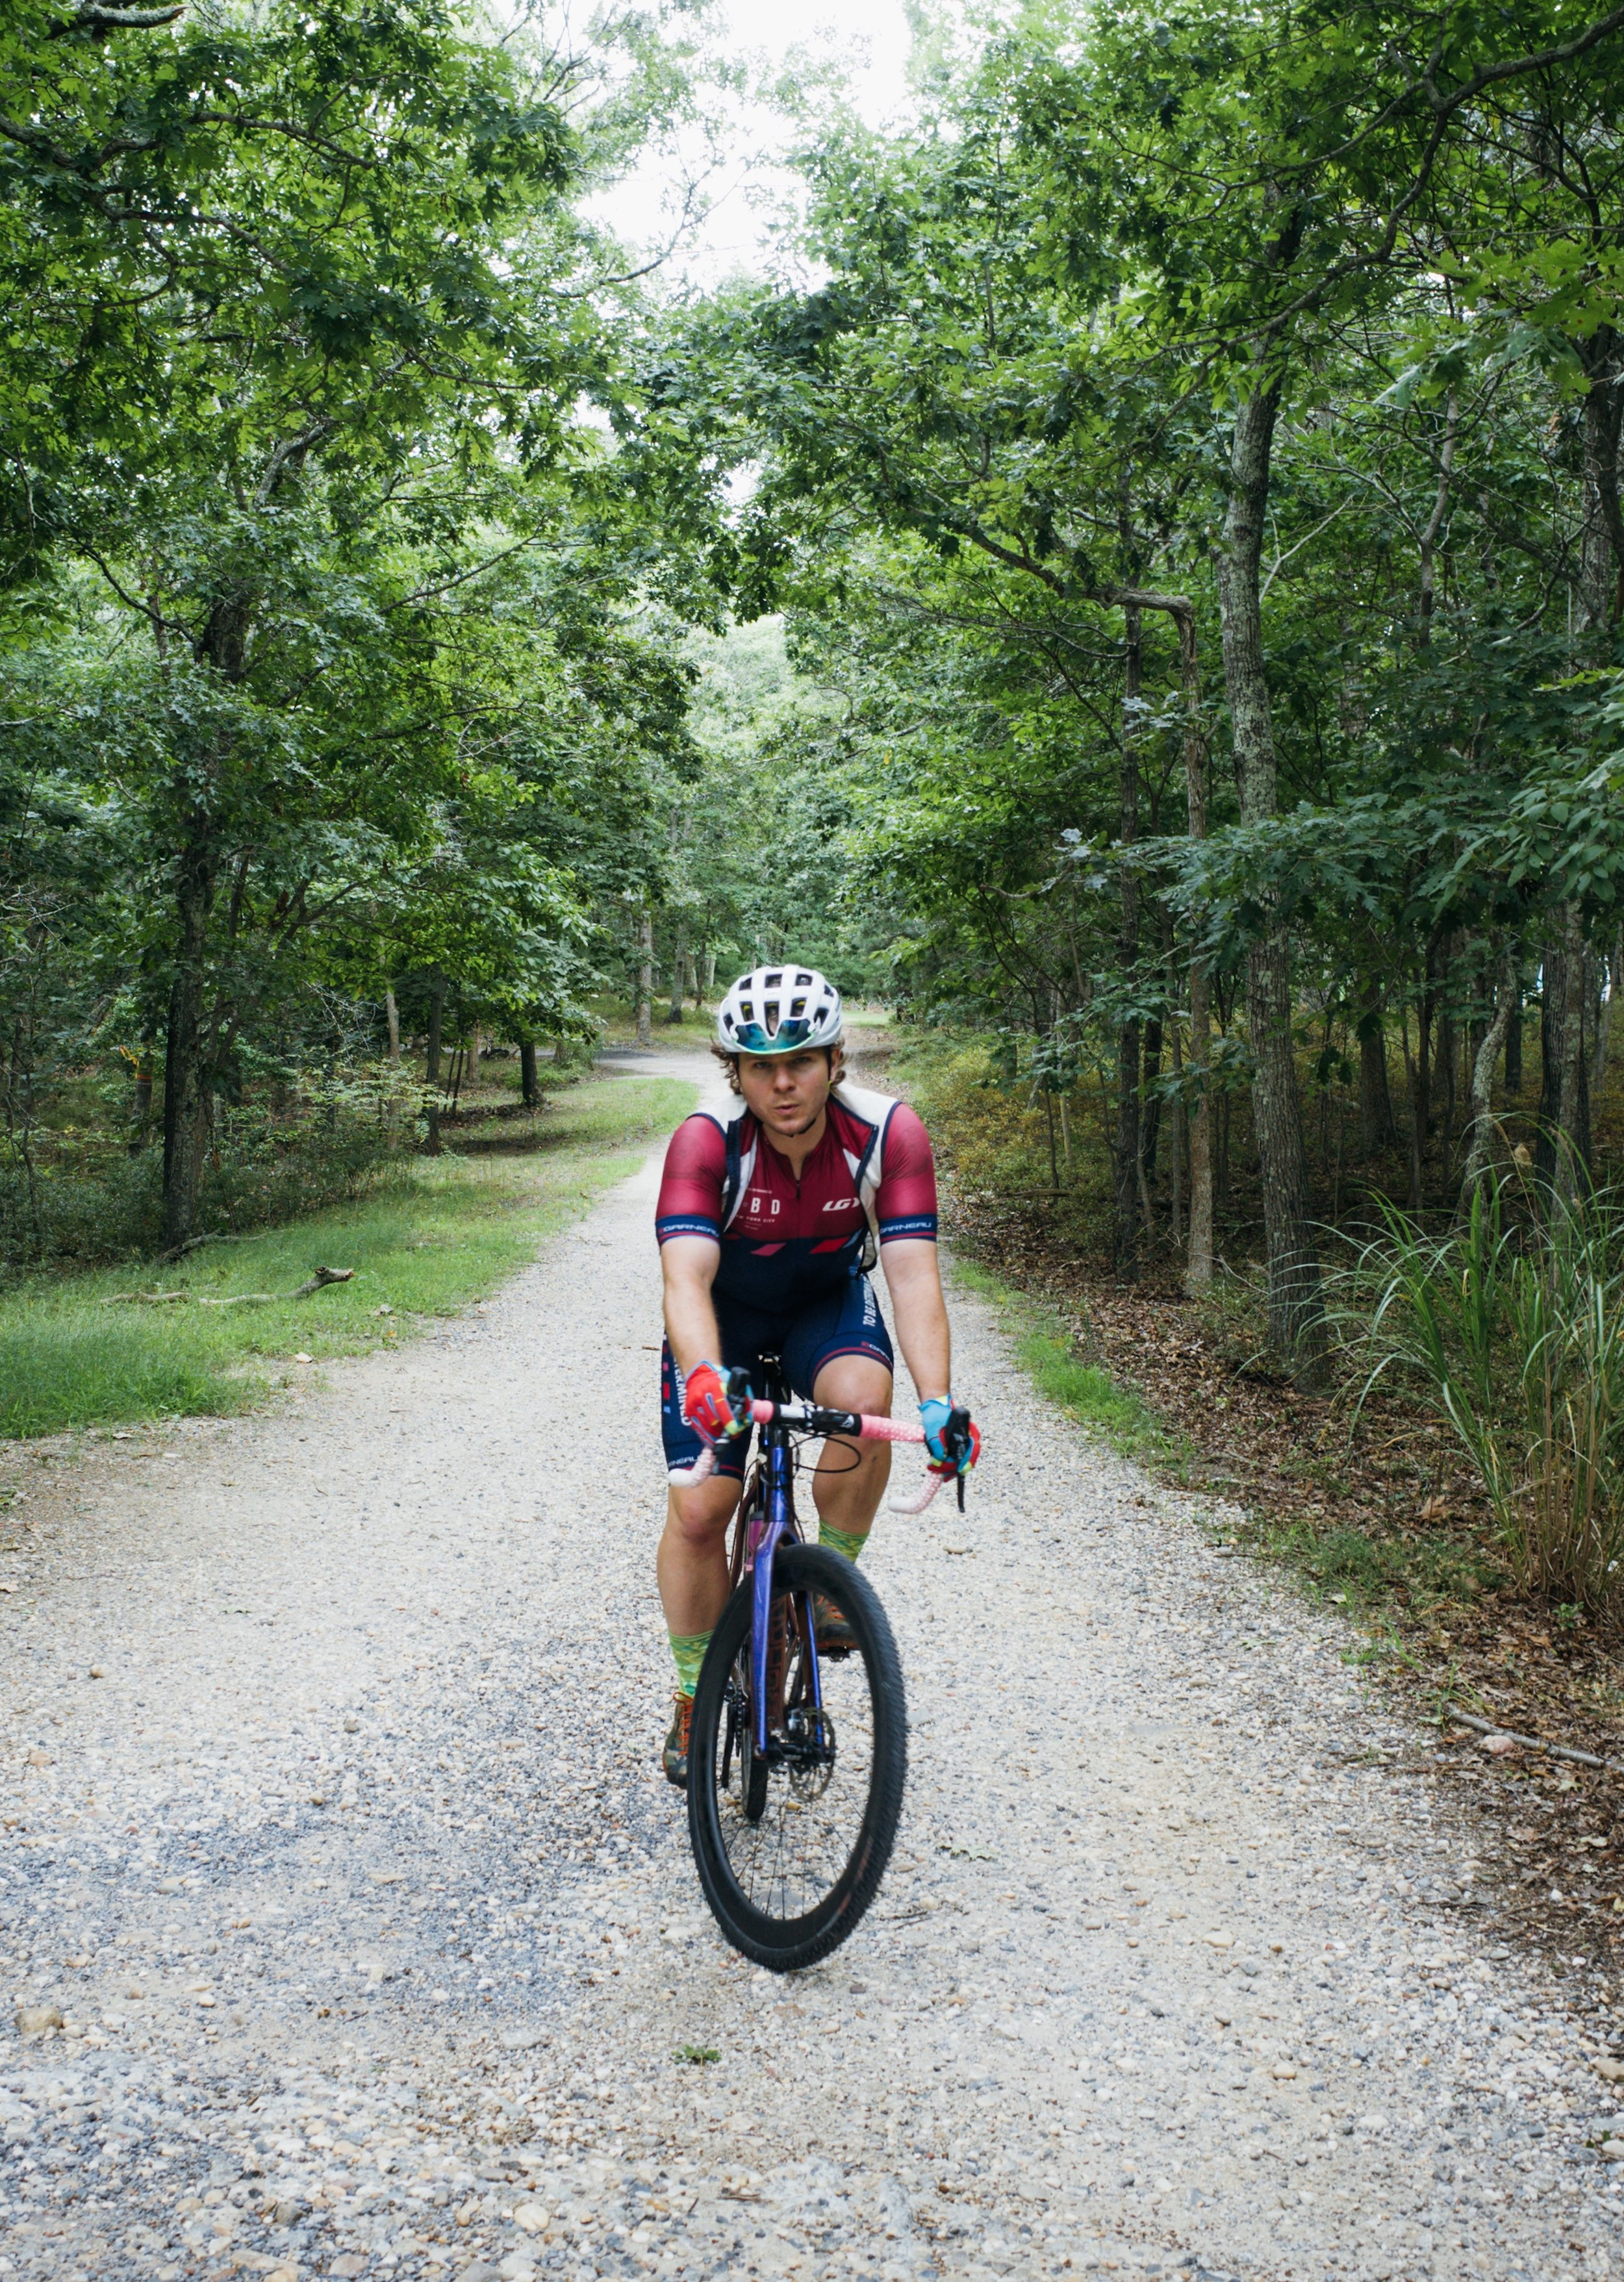 I'll be honest, racing cyclocross is mostly an excuse to ride trails on non-race weekends and then drink beer on race weekends.